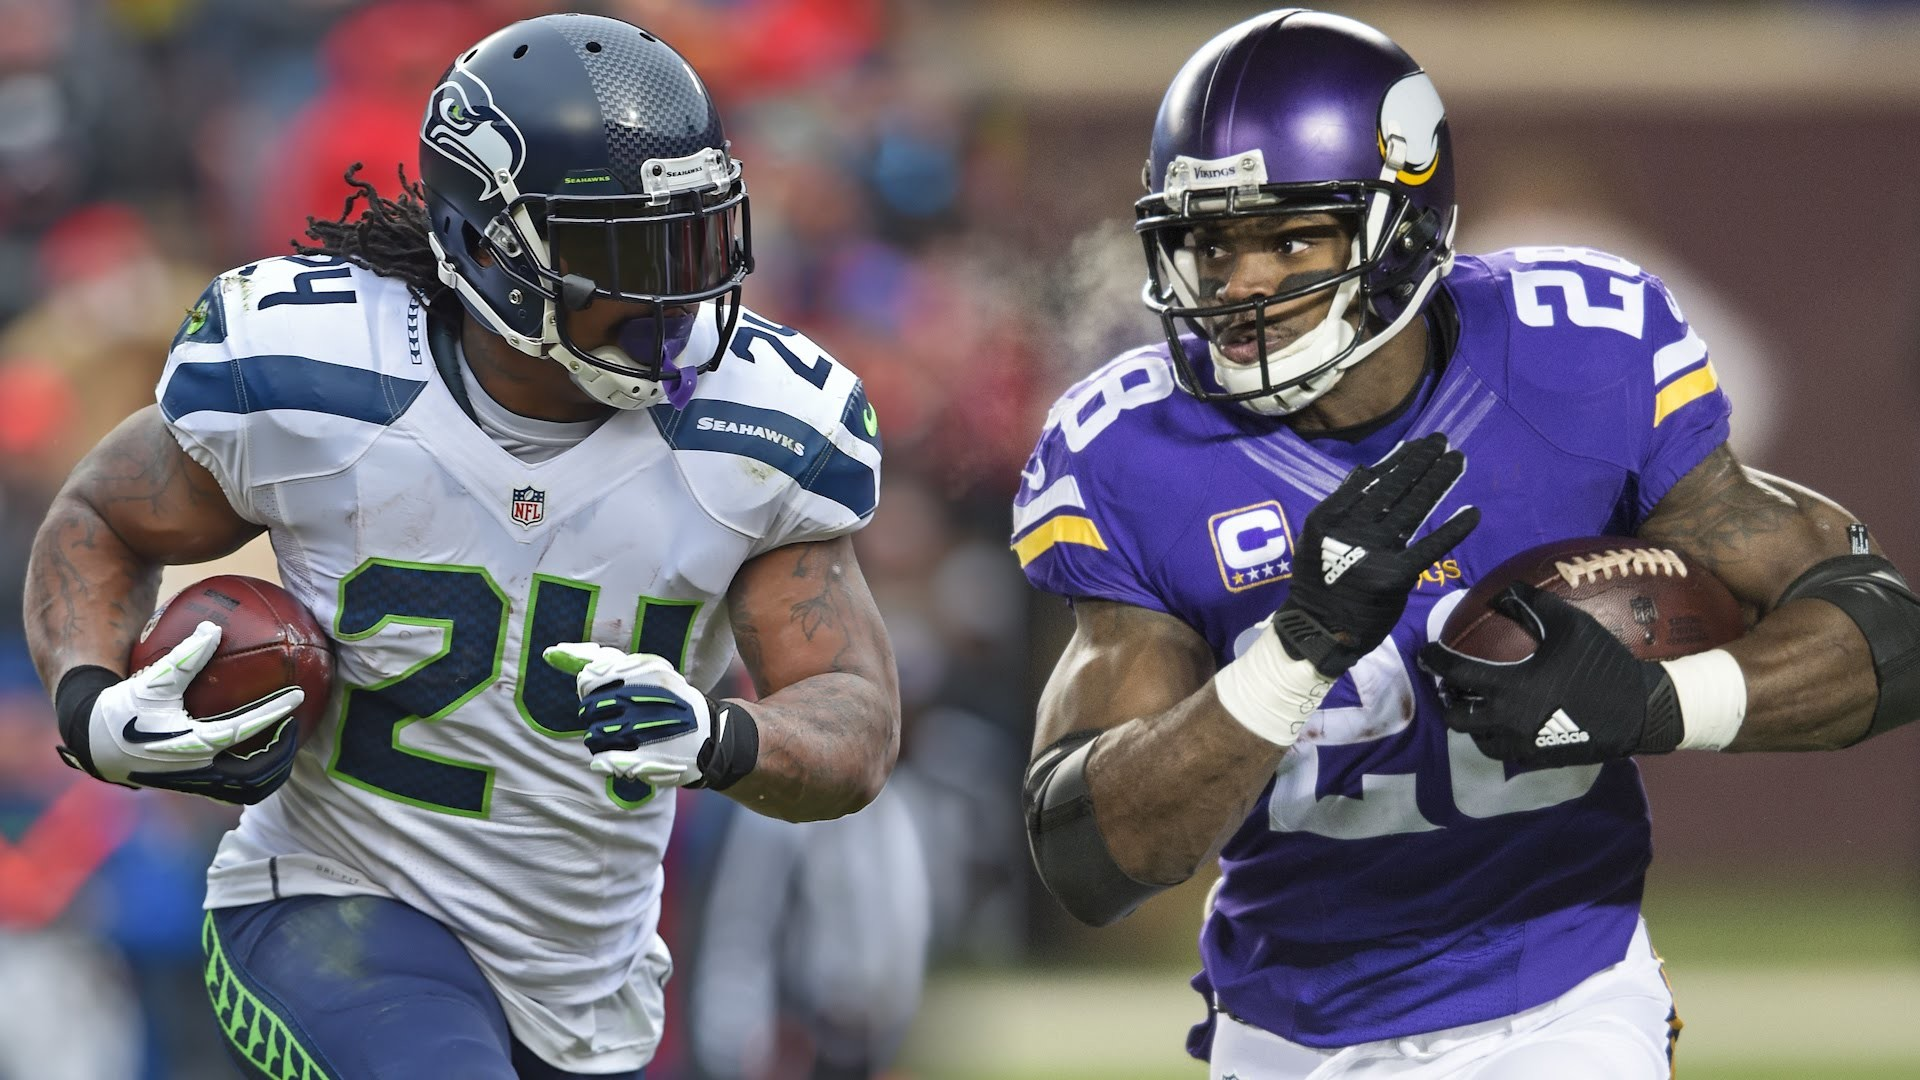 Adrian Peterson: Marshawn Lynch is the second best RB in the NFL